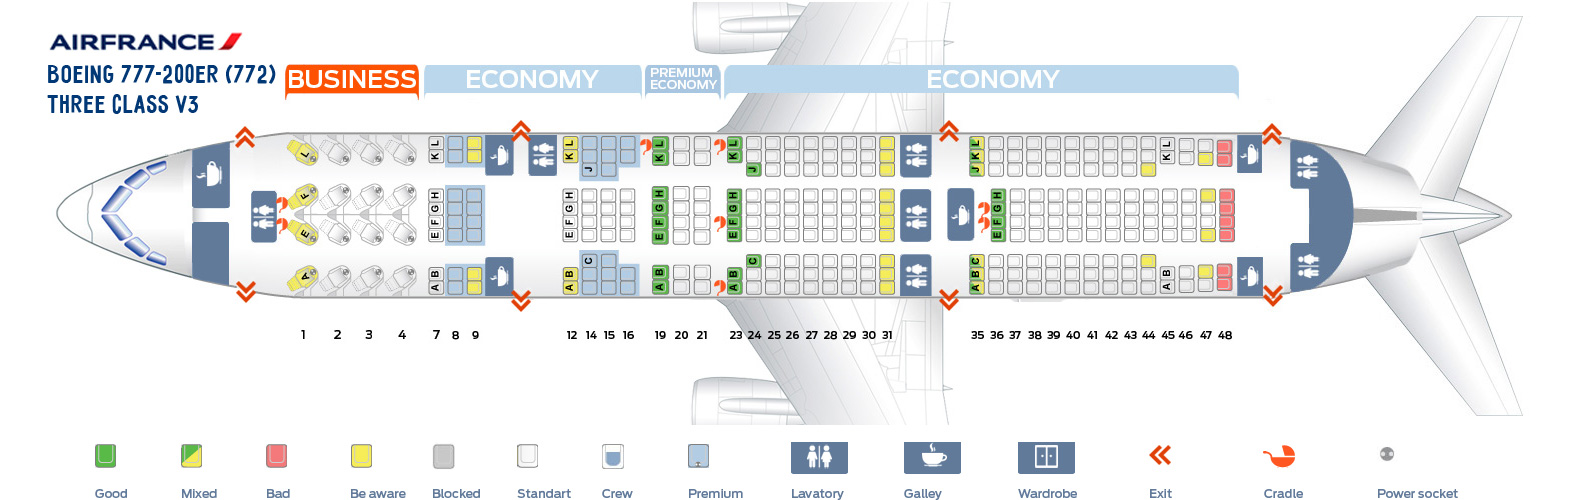 Seat Map Boeing 777-200ER Three Class V3 AirFrance